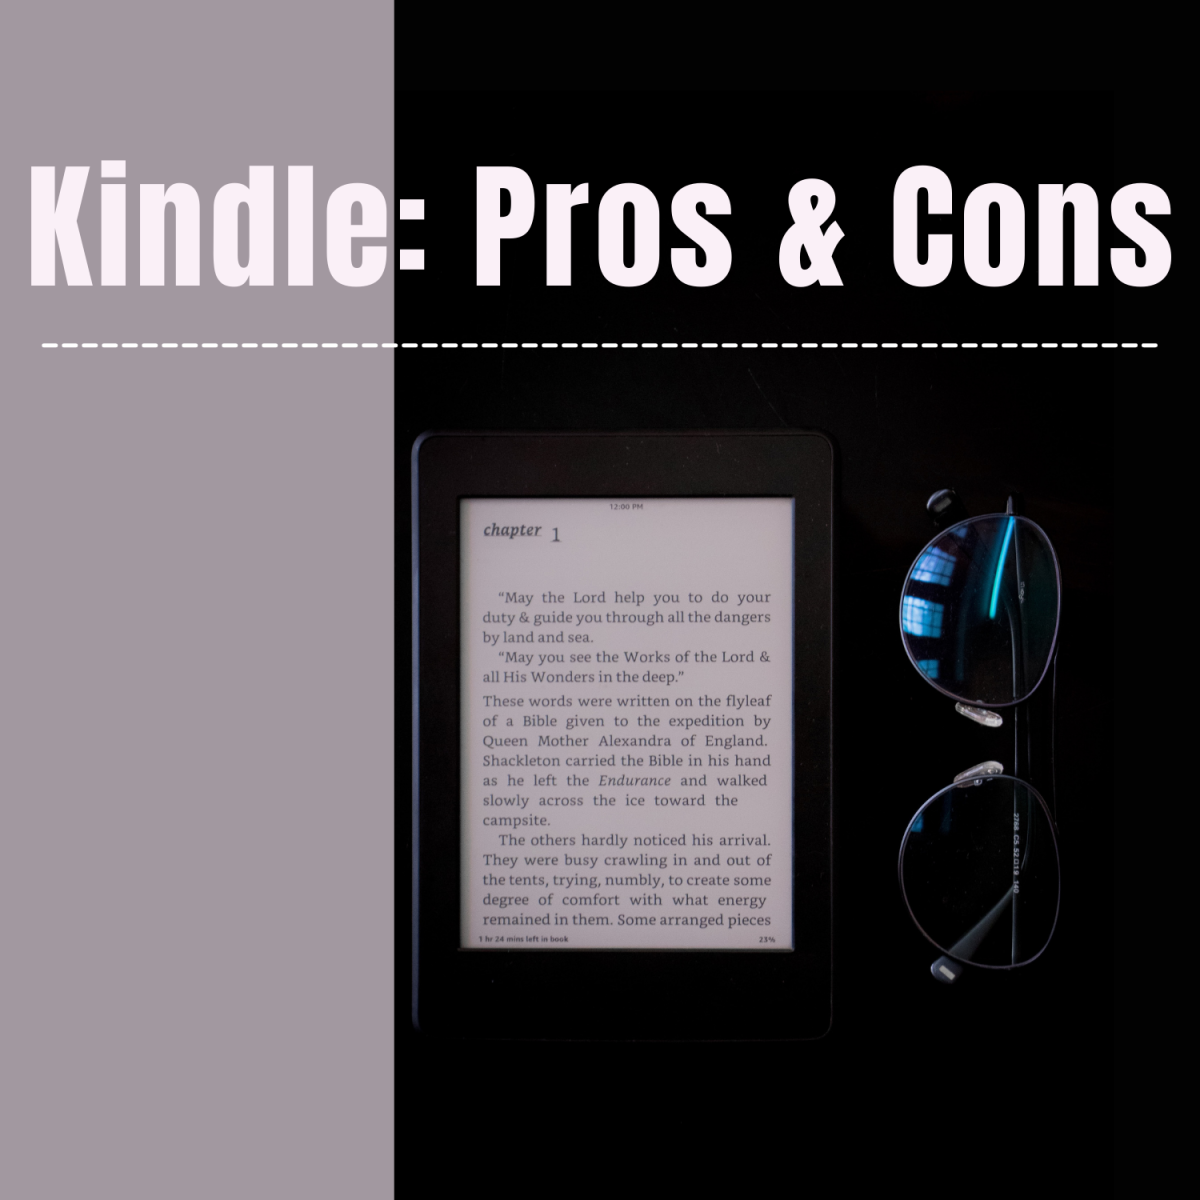 The advantages and disadvantages of eReaders like Kindle.